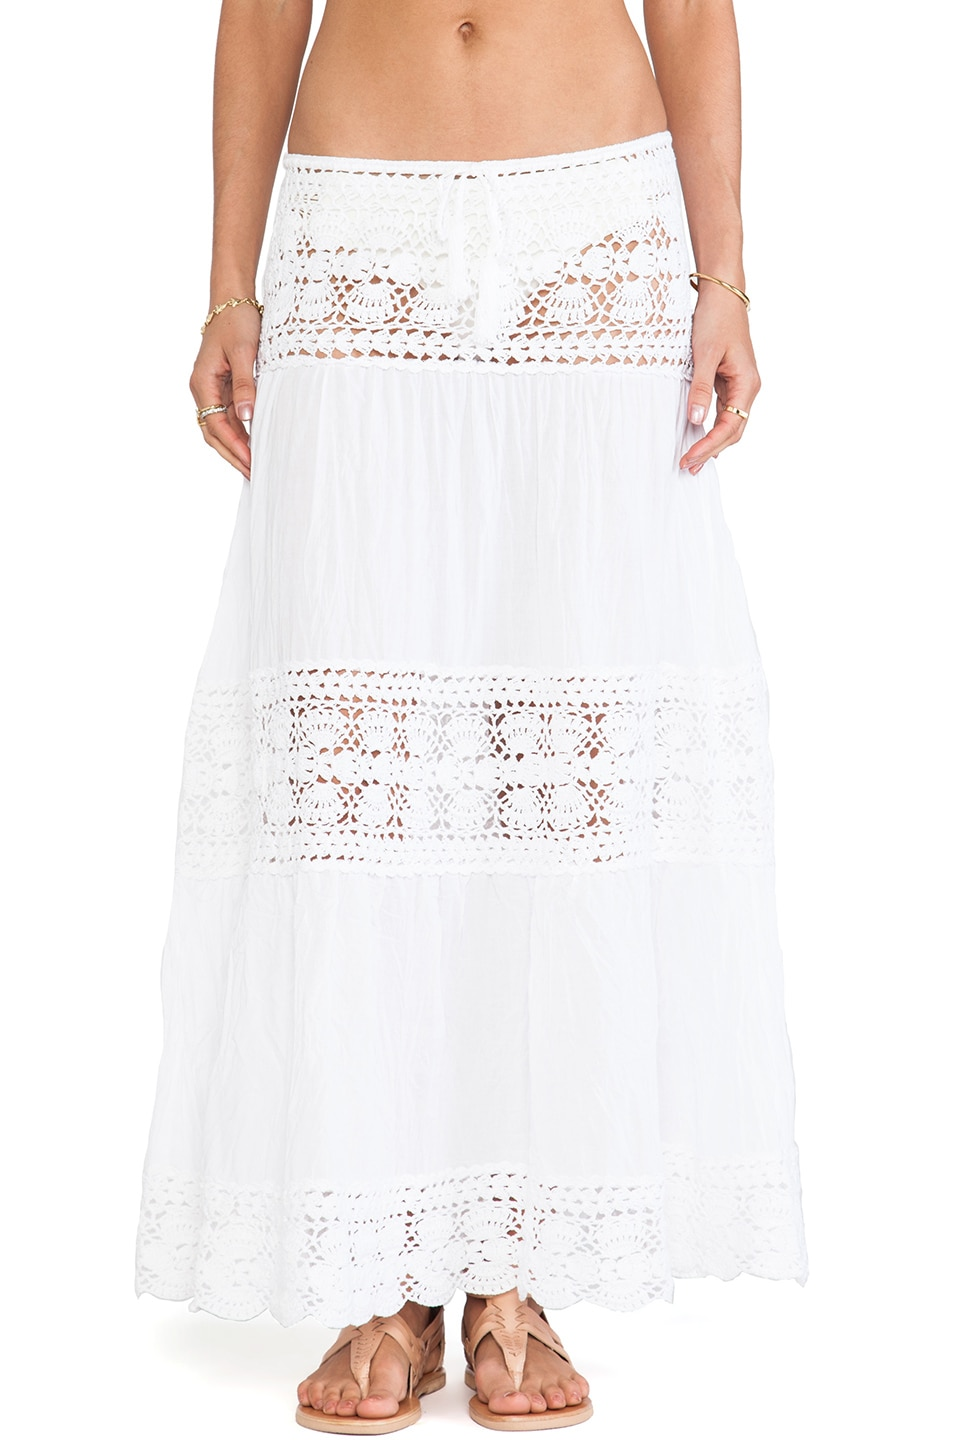 Anna Kosturova Filigree Maxi Skirt in White